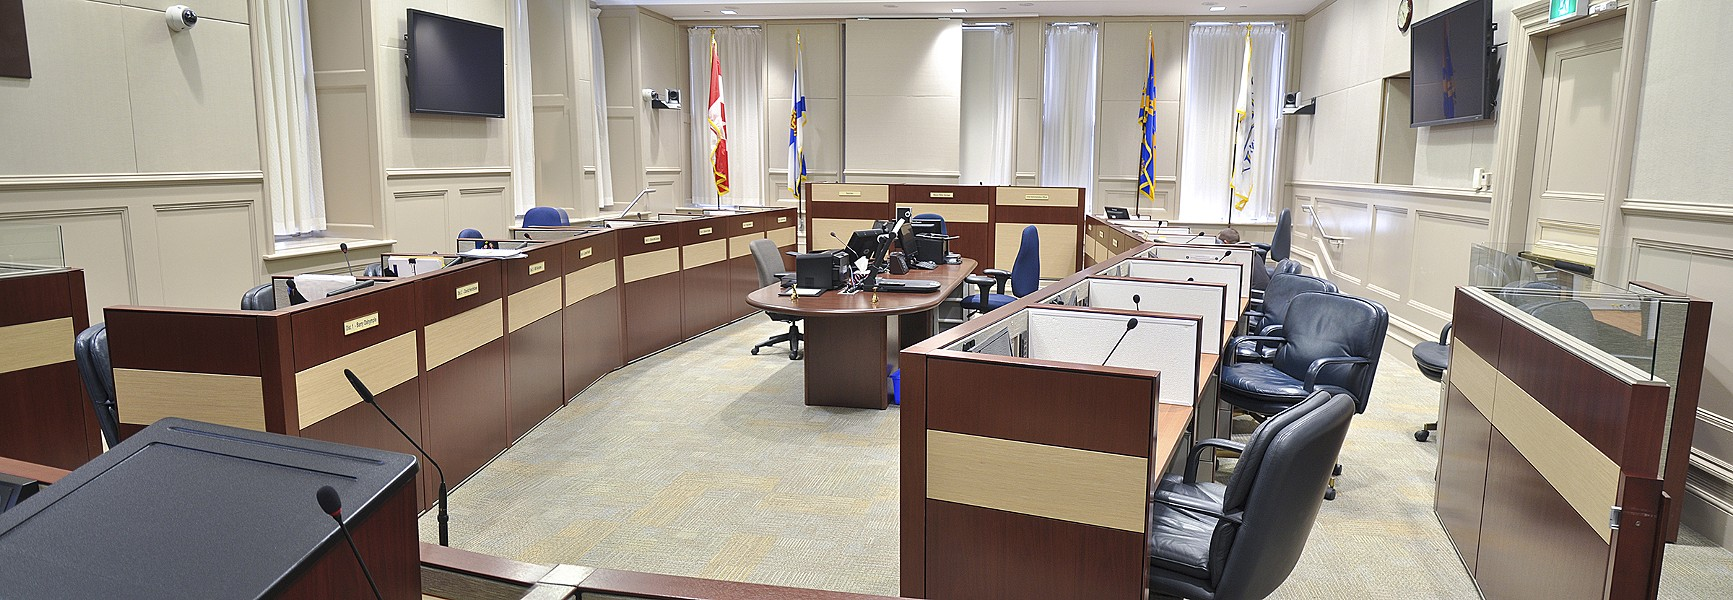 Council chambers inside City Hall. - VIA HRM